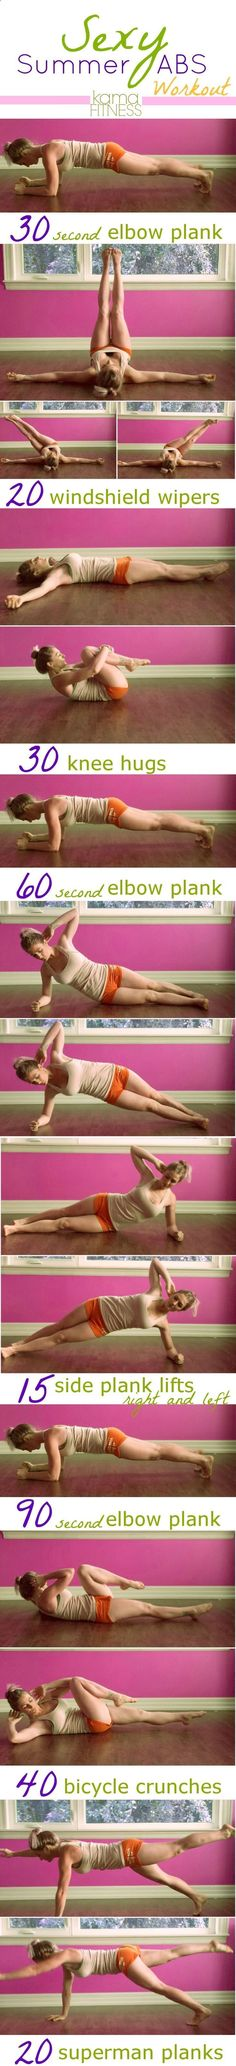 Belly Fat Workout - Sexy summer abs workout.. torch belly fat with these moves! I am so sore! Do This One Unusual 10-Minute Trick Before Work To Melt Away 15+ Pounds of Belly Fat